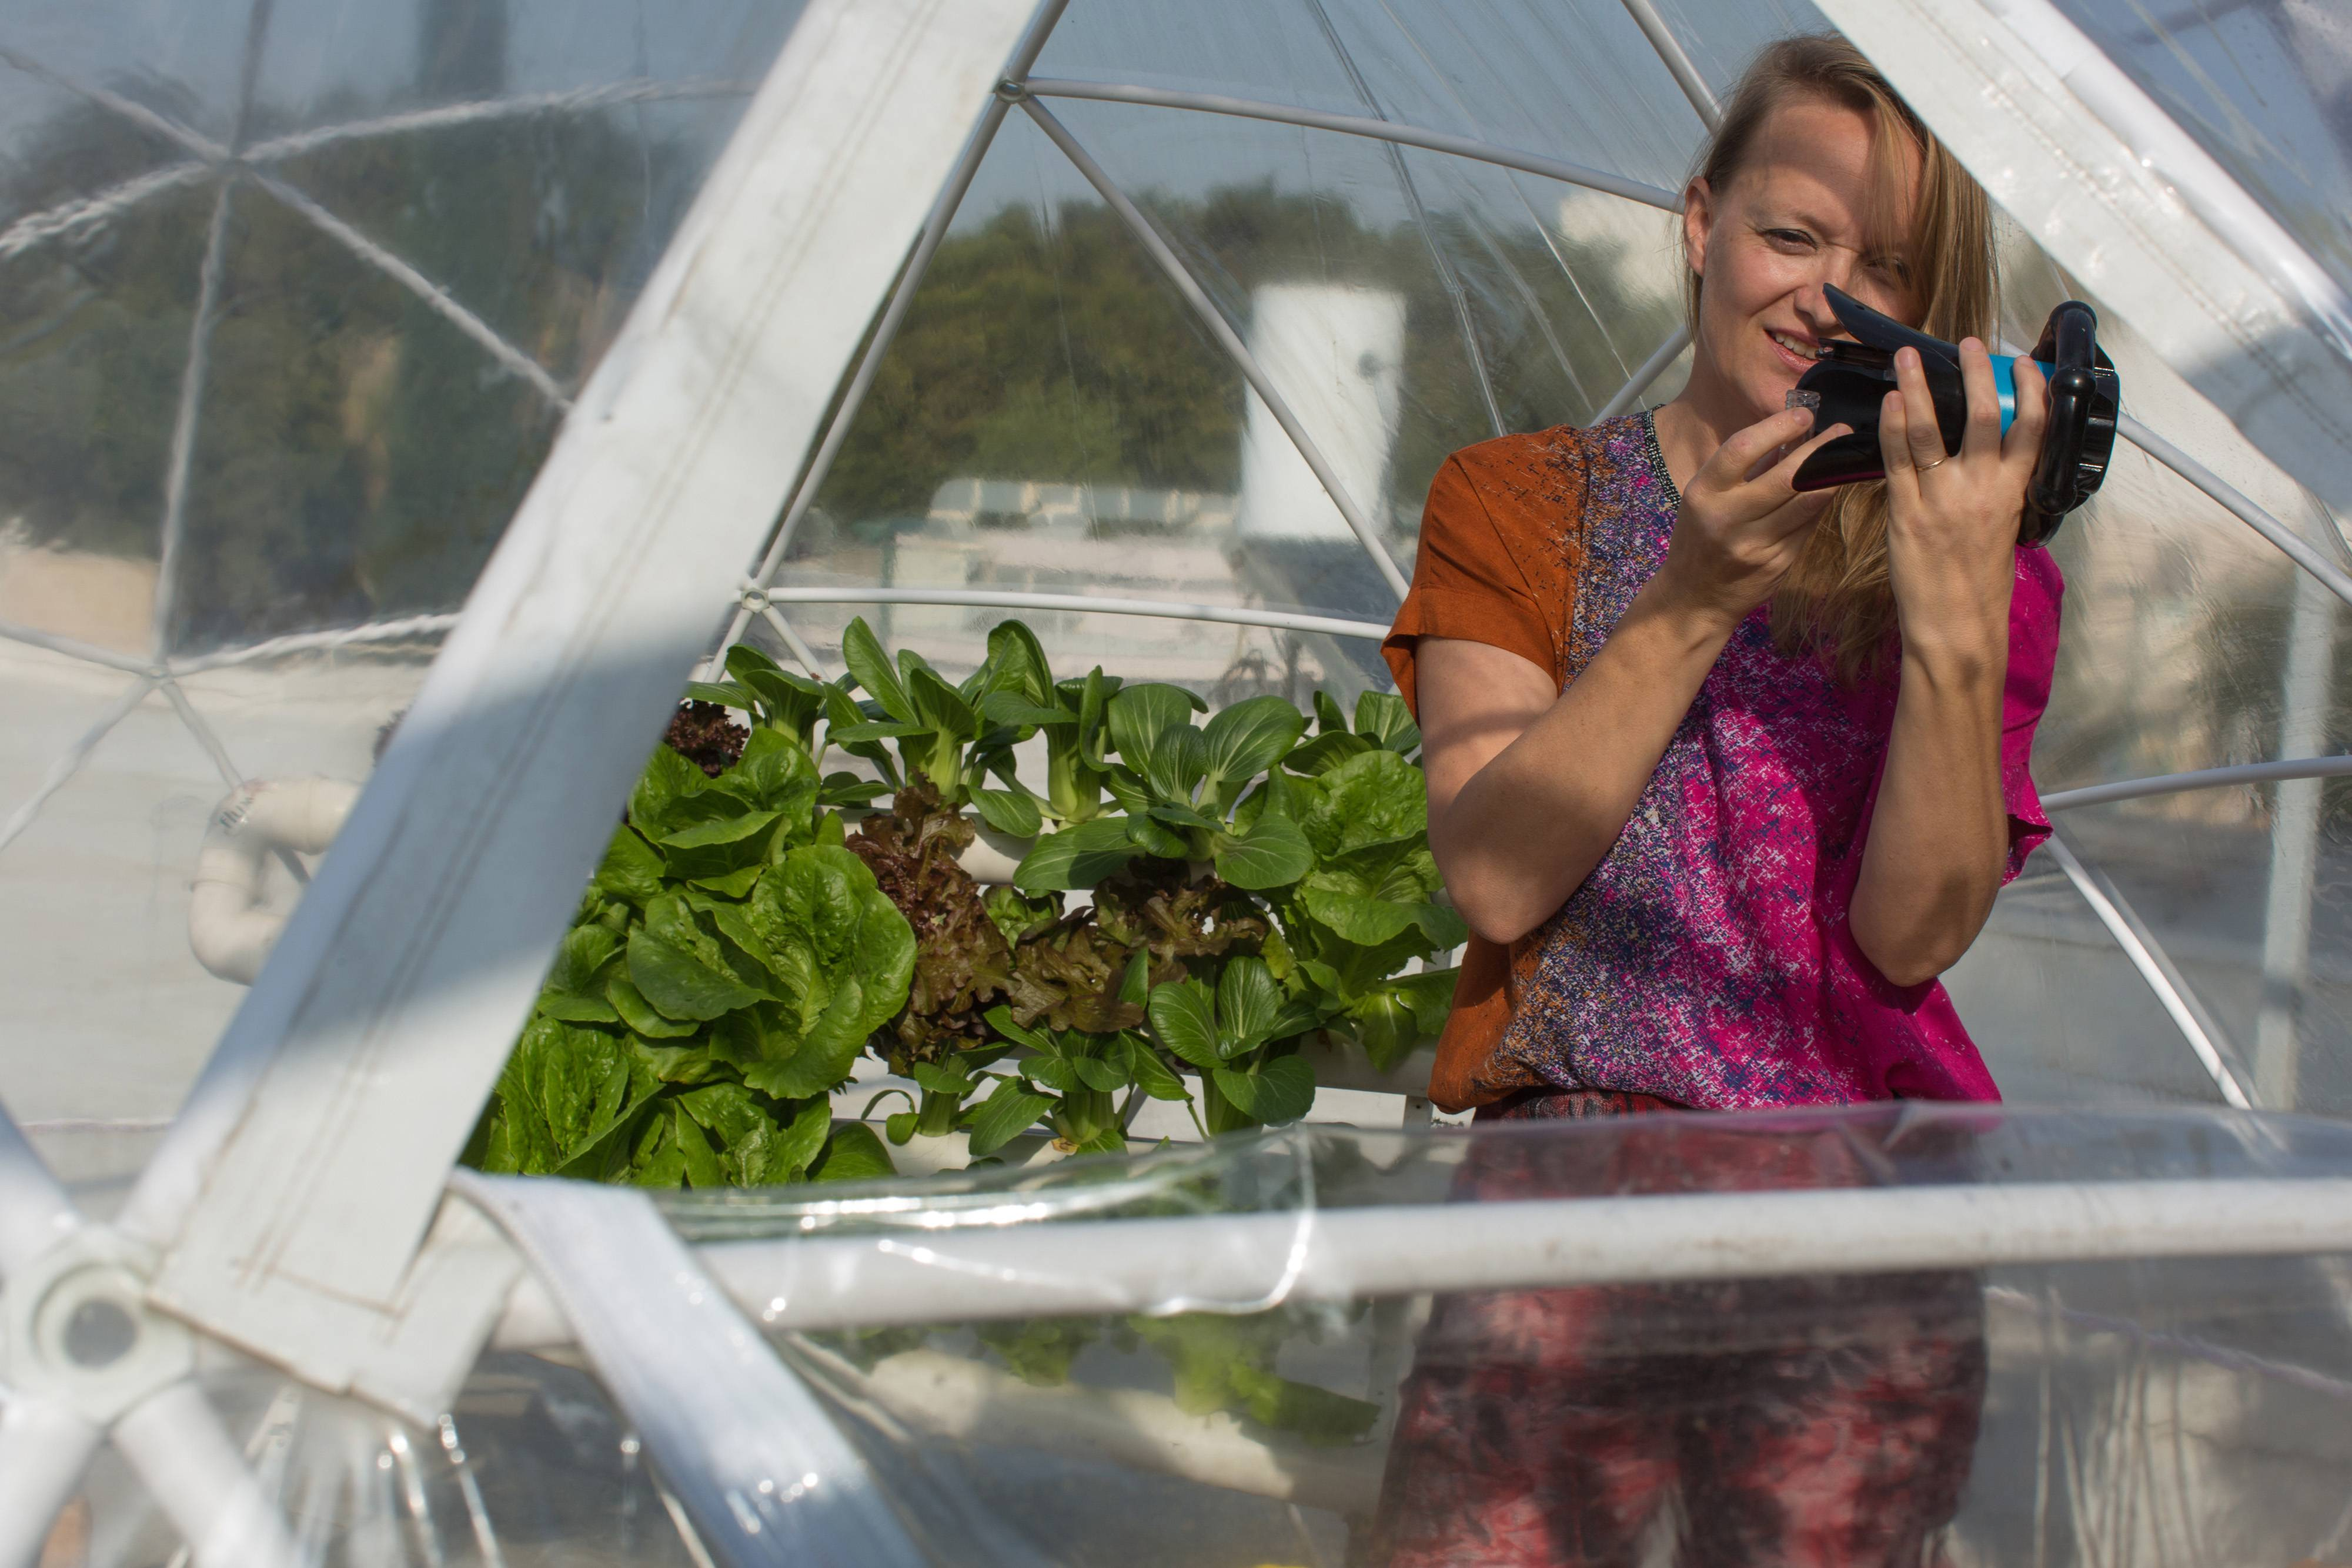 "Karin Kloosterman, co-founder of Flux IoT, prepares her tiny robot ""Eddy,"" which can detect nutrient deficiency in plants, in a pop up greenhouse during its development to help produce food from water in the Jaffa district of Tel Aviv, Israel, on Feb. 26, 2017. Bloomberg photo by Rina Castelnuovo."